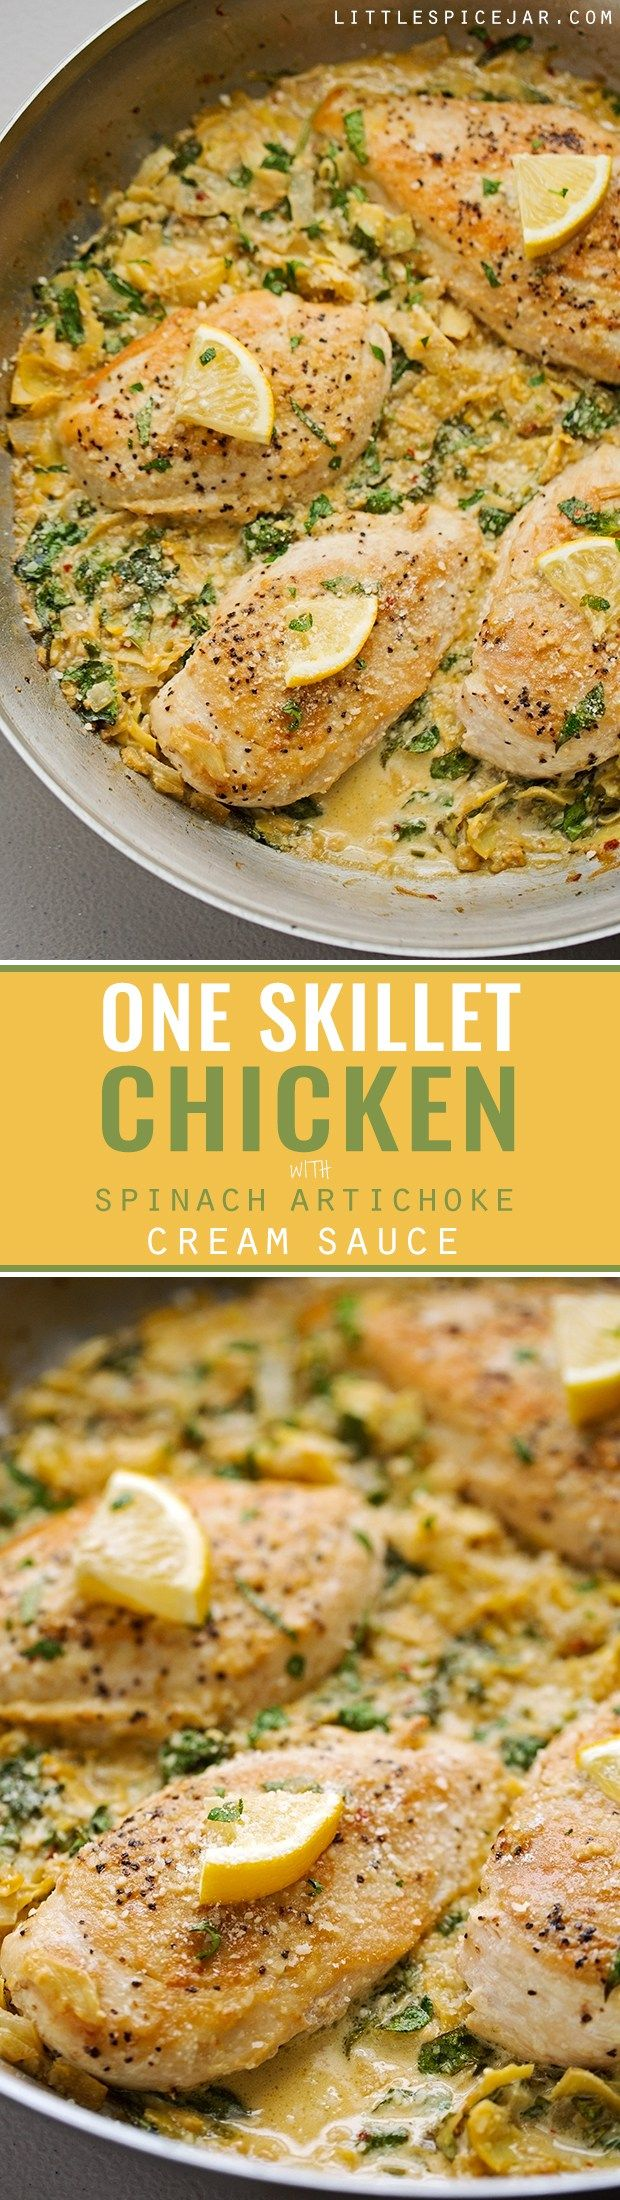 A one skillet chicken dinner that is easy to make with only a few ingredients. Pan seared chicken breast drizzled with a lemon garlic butter cream sauce .